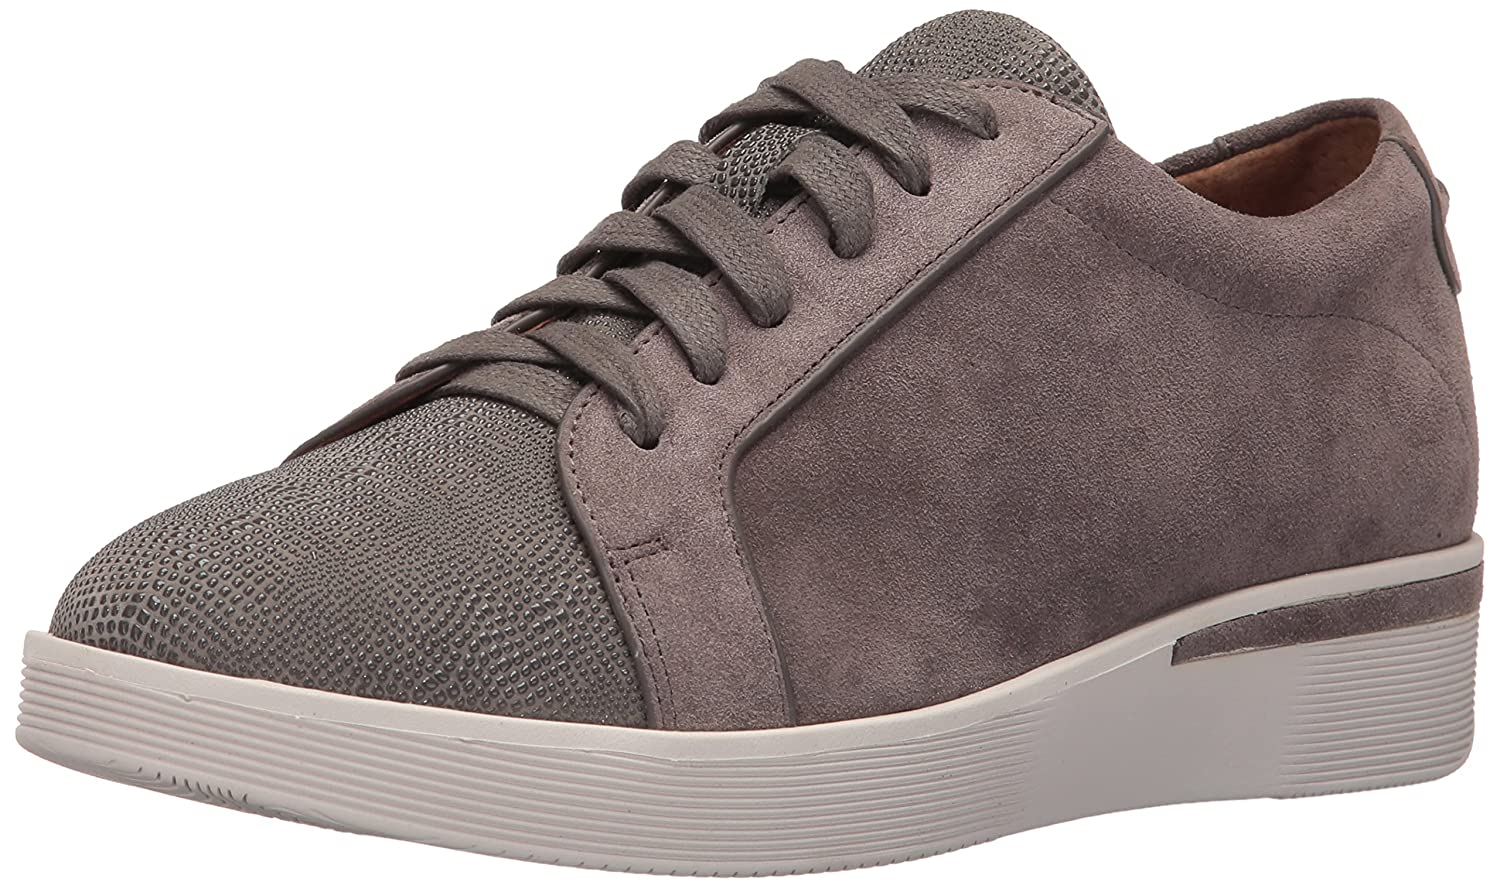 Gentle Souls by Kenneth Cole Women's Haddie Low Profile Fashion Sneaker Embossed Fashion Sneaker B01LYFKT09 7.5 M US|Concrete